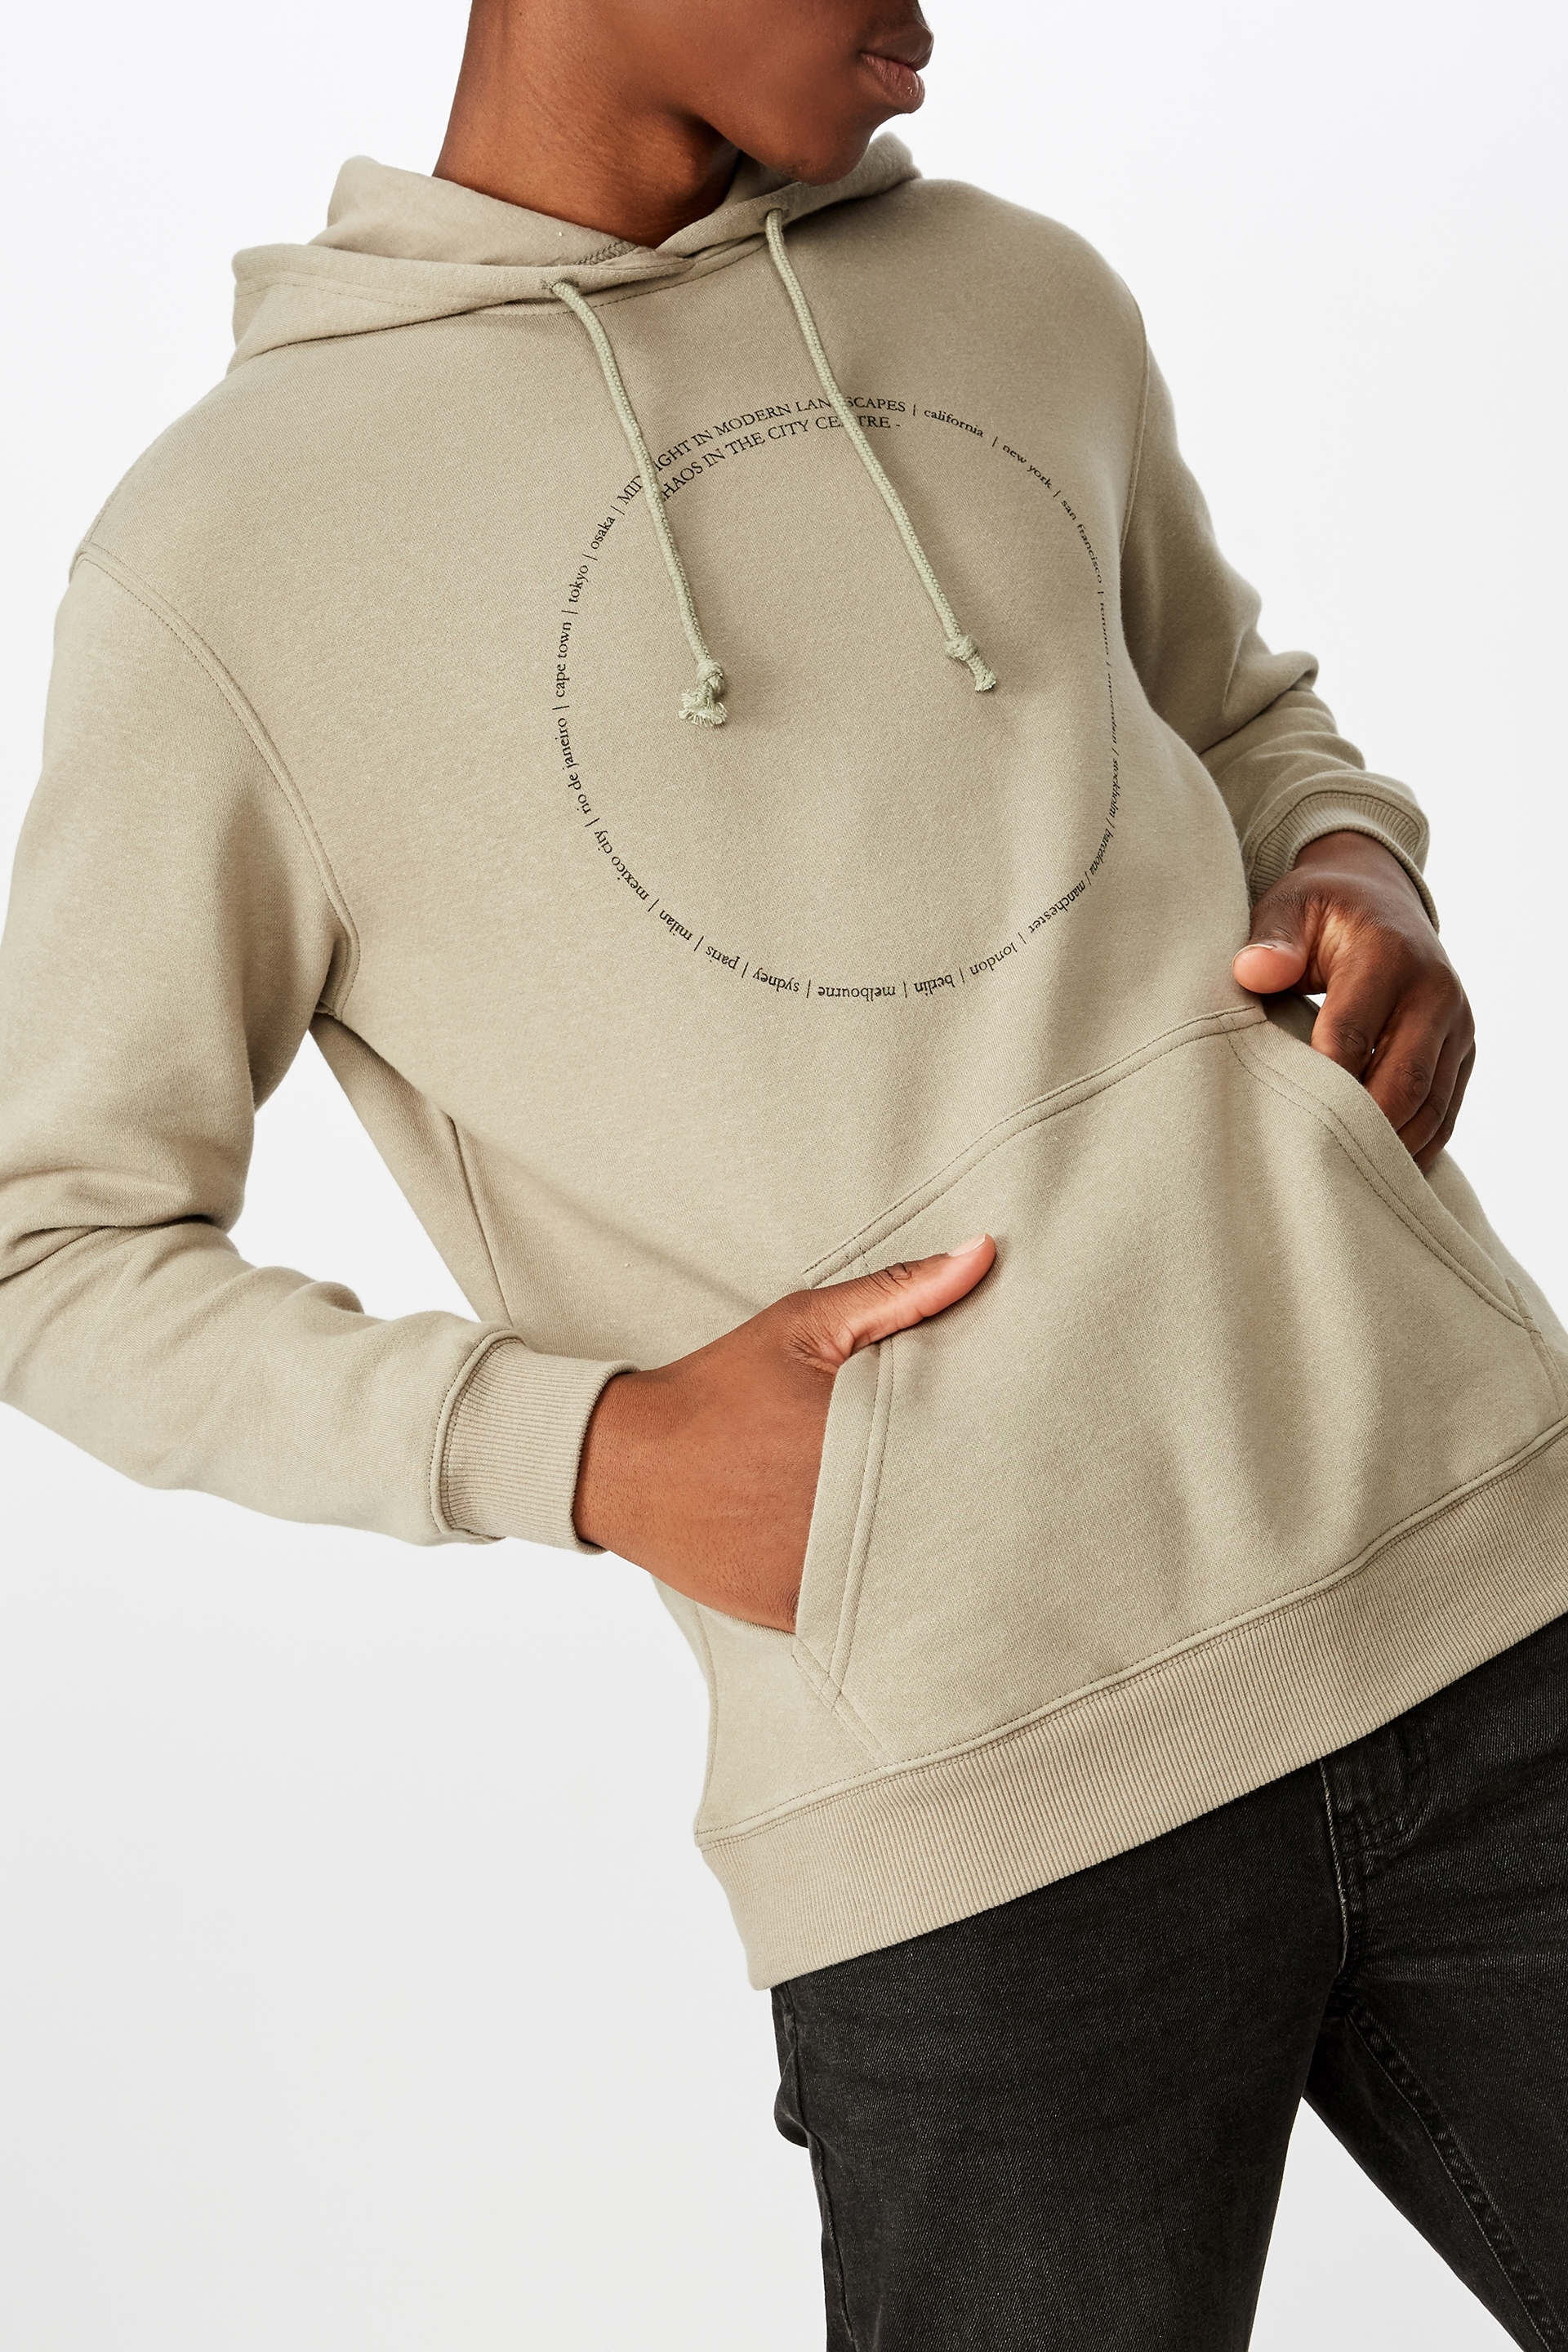 Cotton On Men - Fleece Pullover 2 - Moss stone/modern landscapes